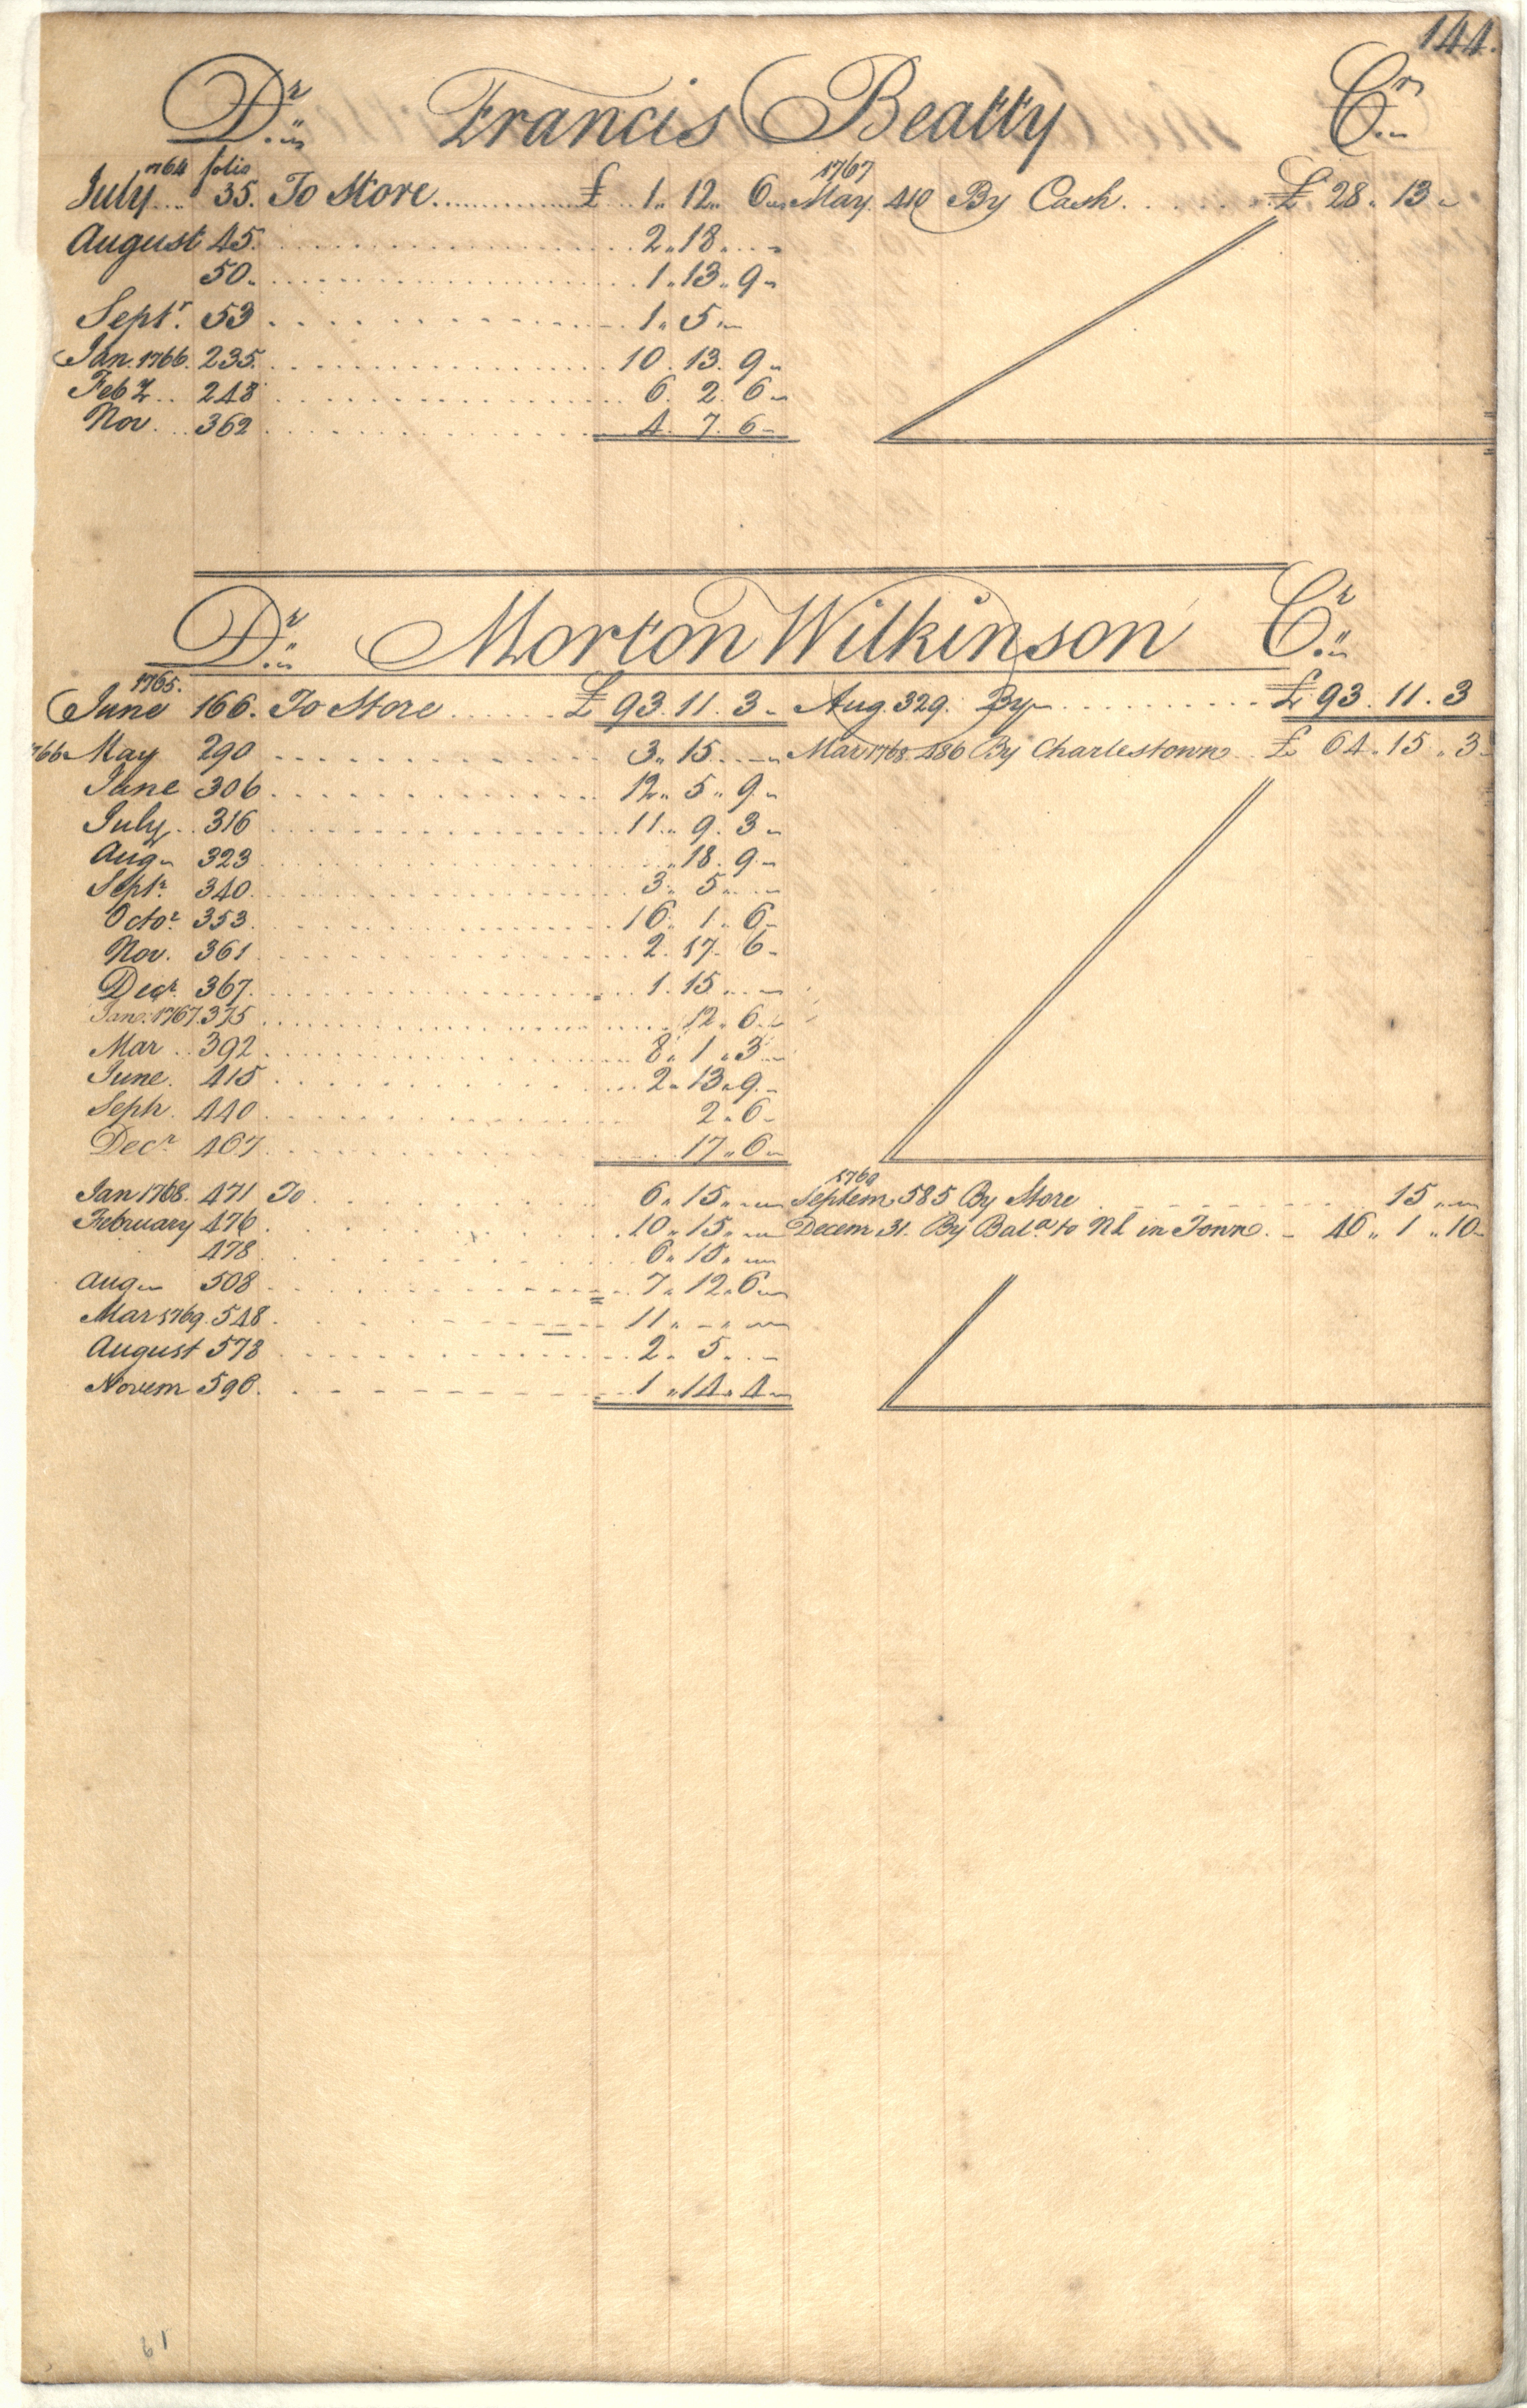 Plowden Weston's Business Ledger, page 144